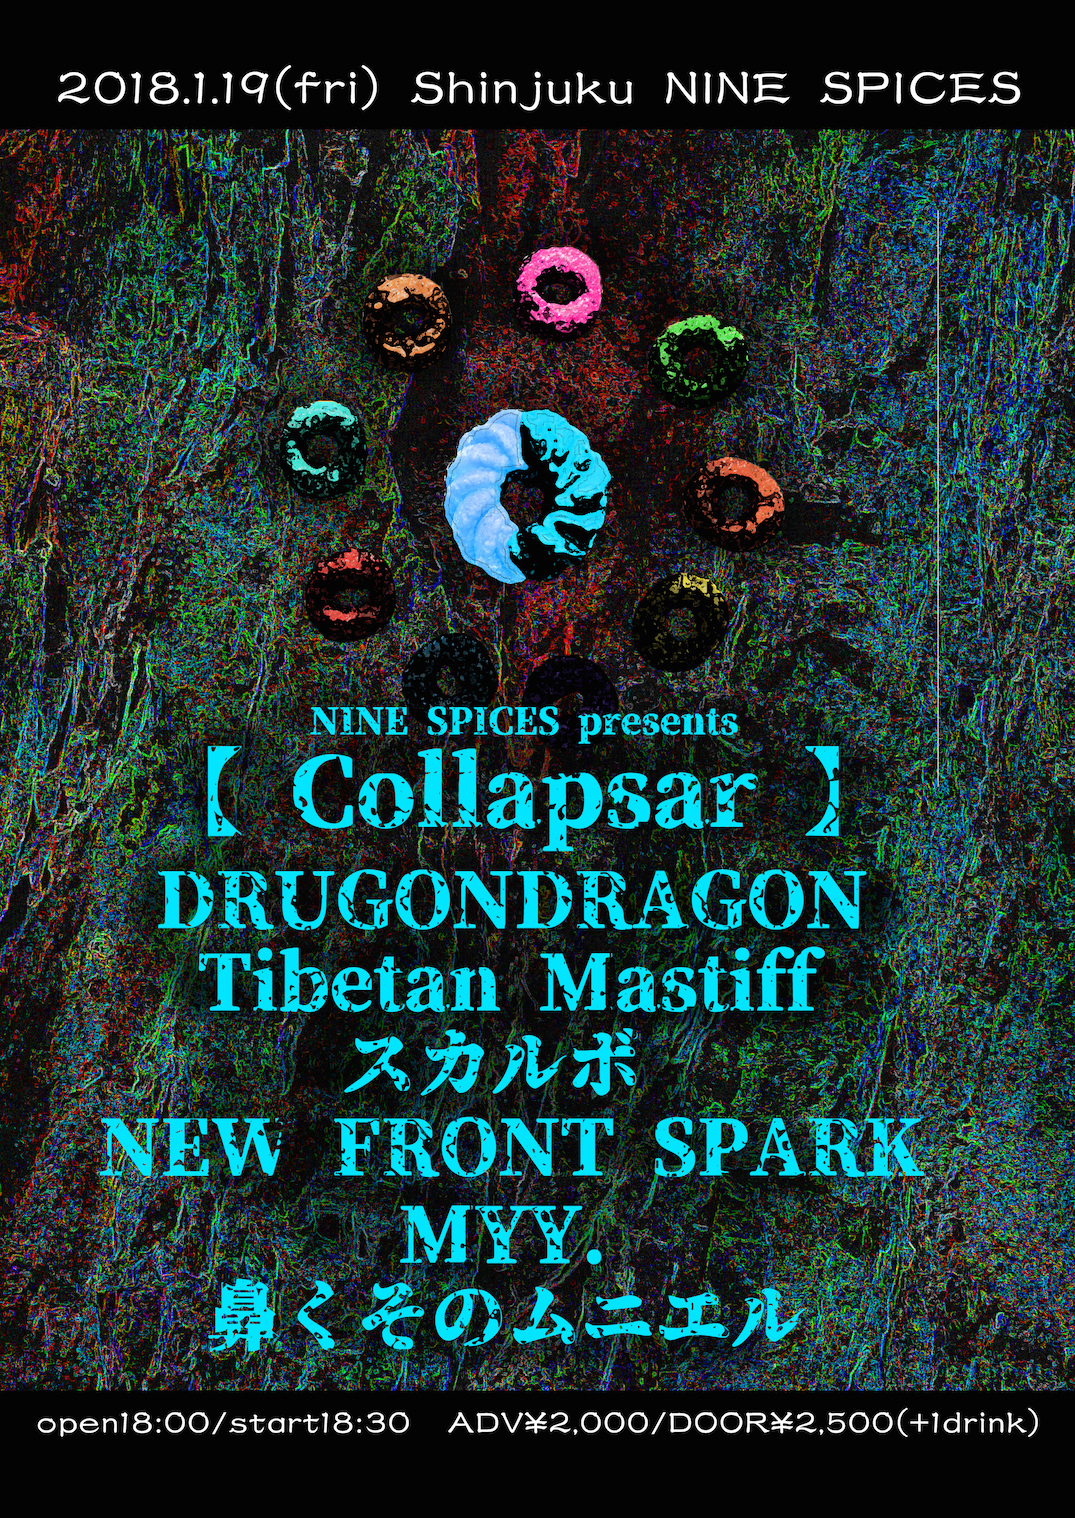 NINE SPICES presents 「Collapsar」